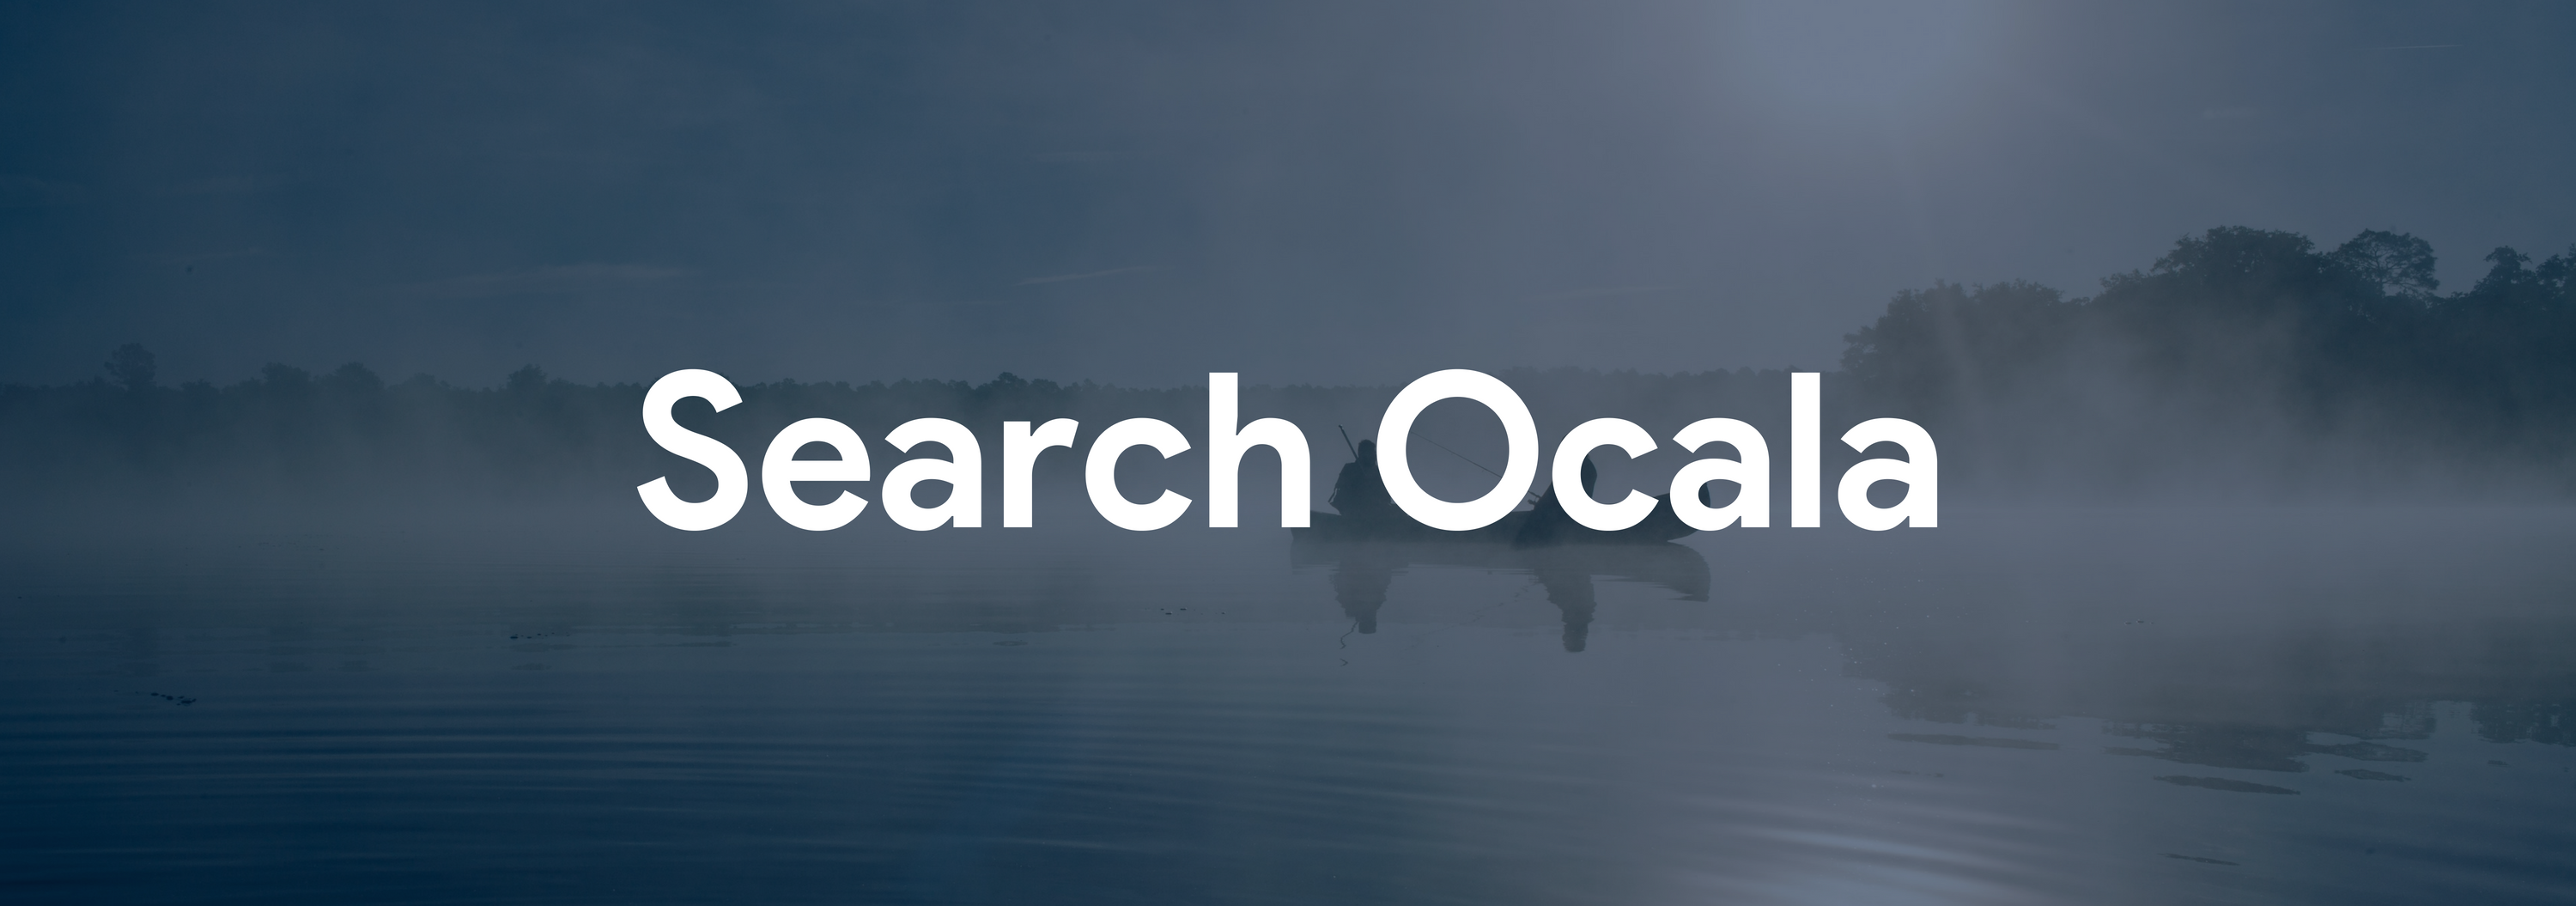 Search Ocala